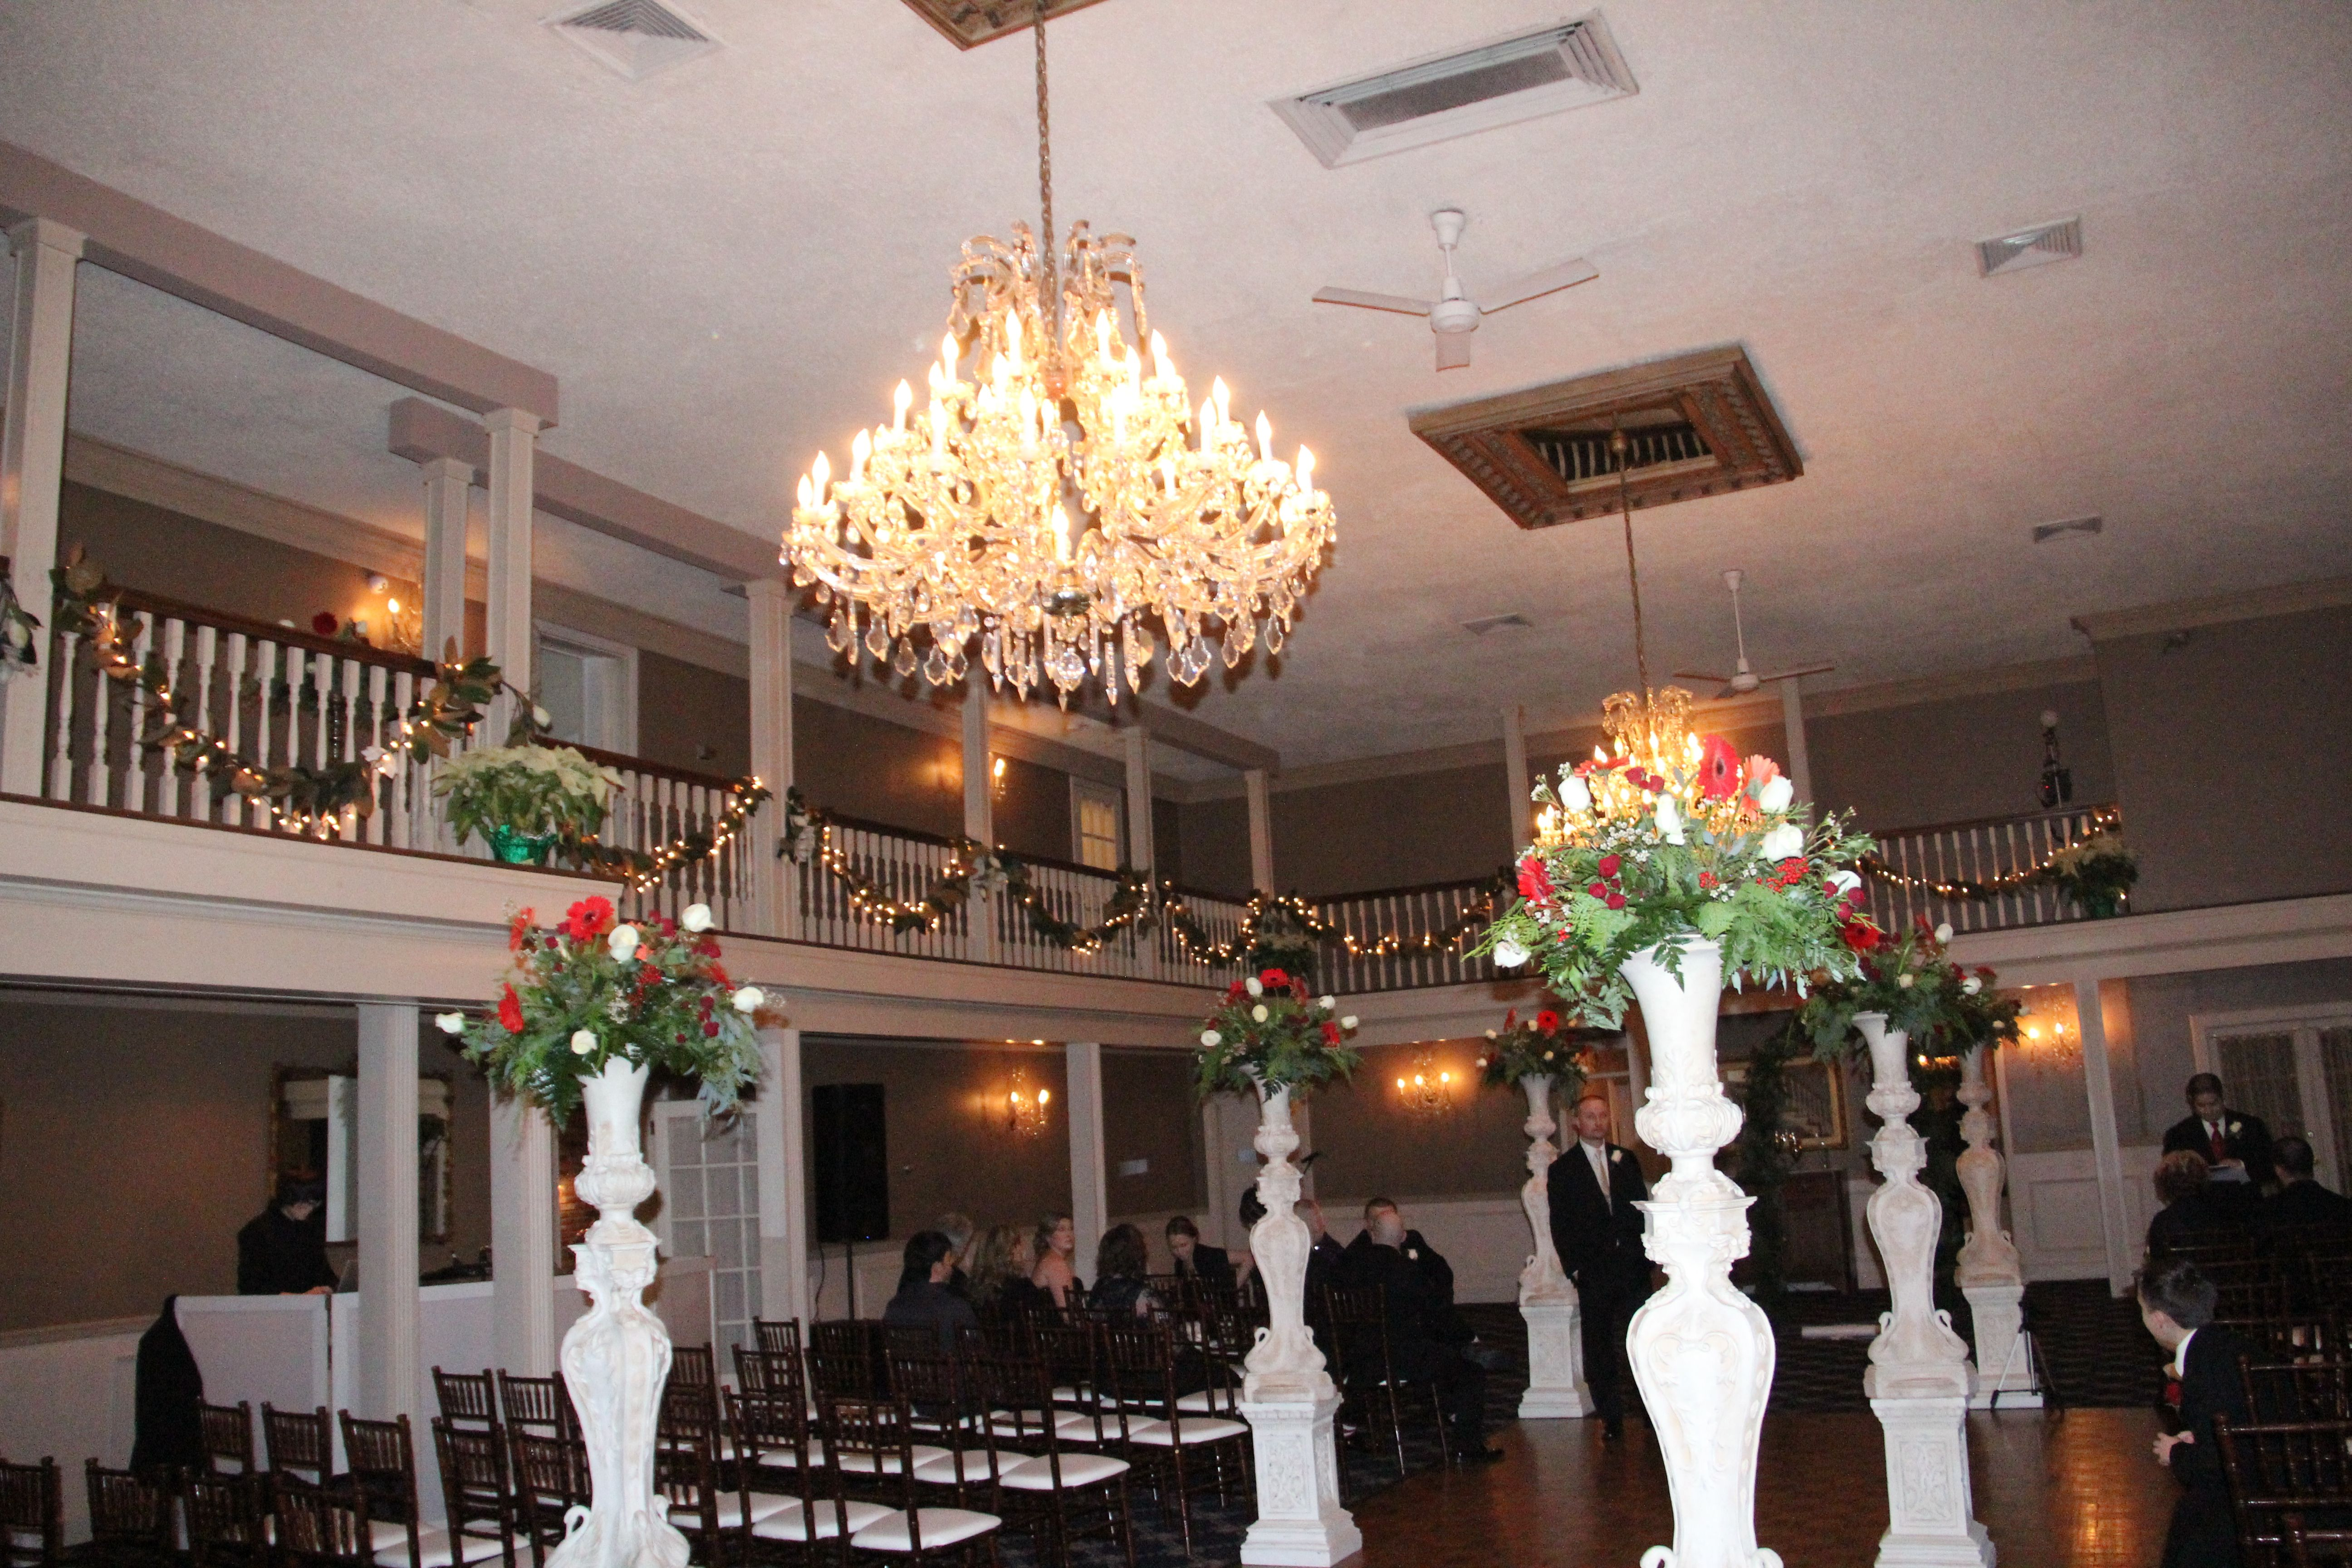 David S Country Inn Great Job Nj Wedding Venues Nj Weddings Places To Get Married